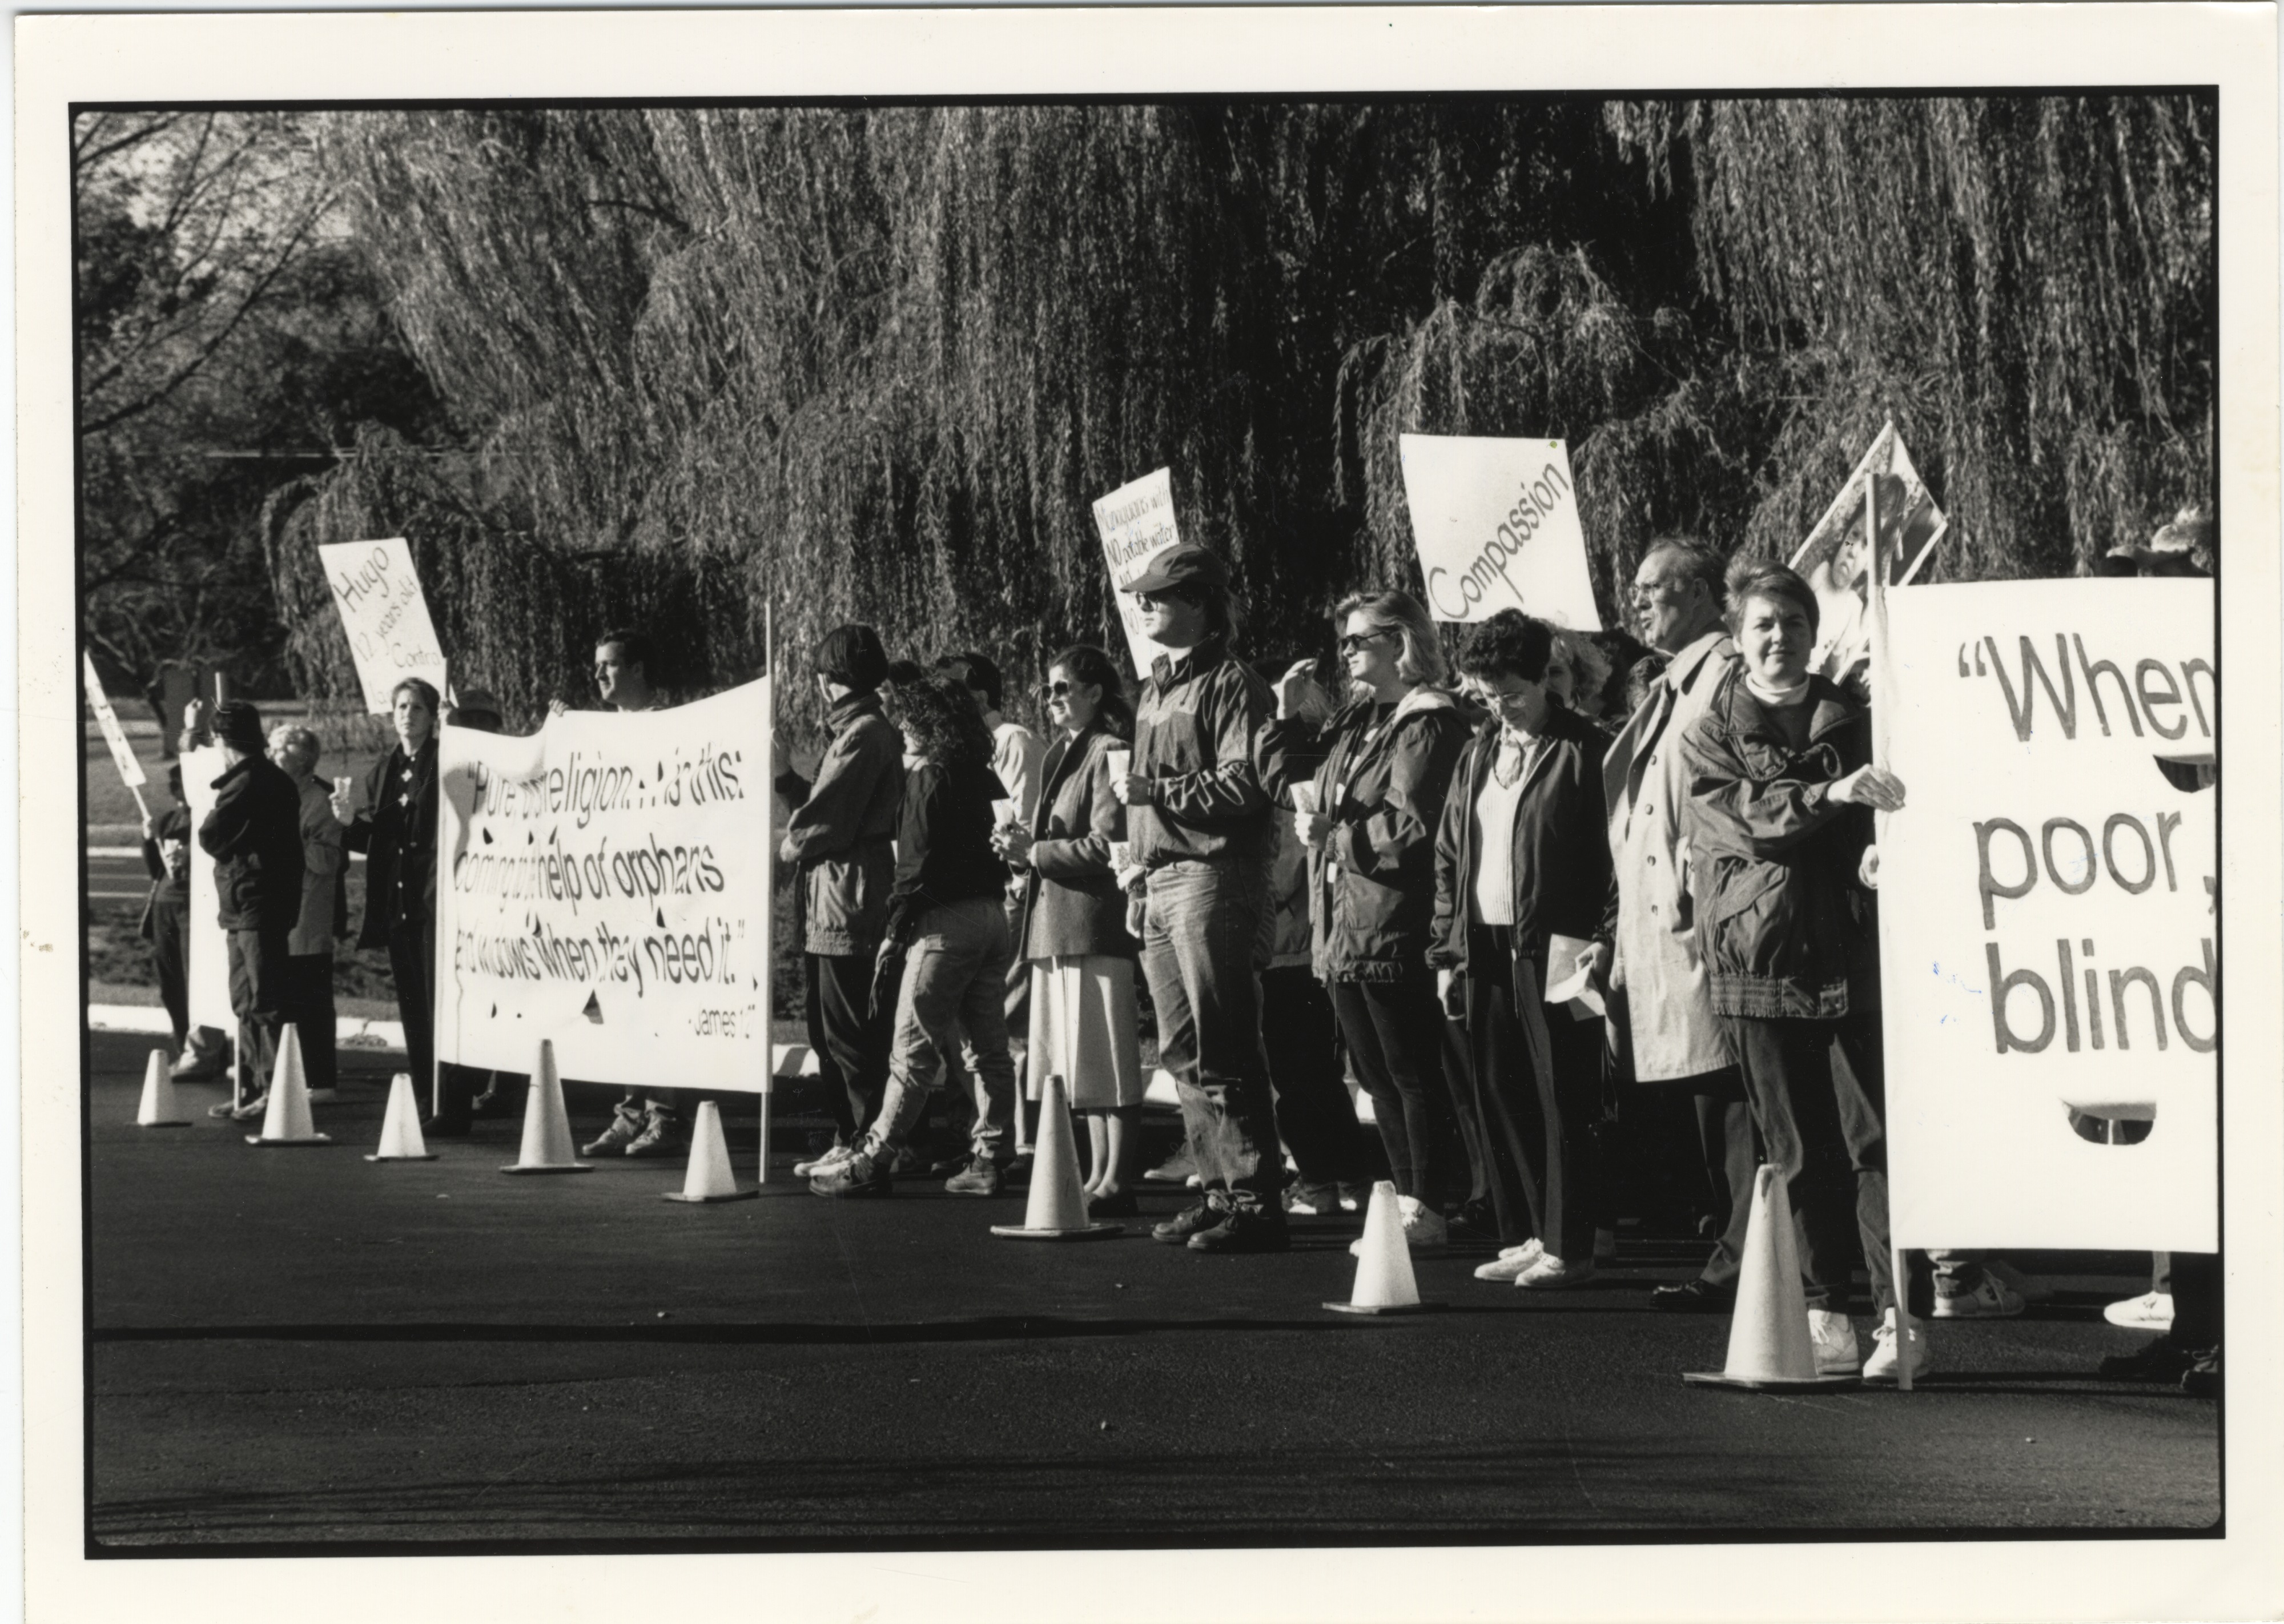 Interfaith Council for Peace and Justice: Silent Vigil Outside St. Francis of Assisi Church, 1991 image